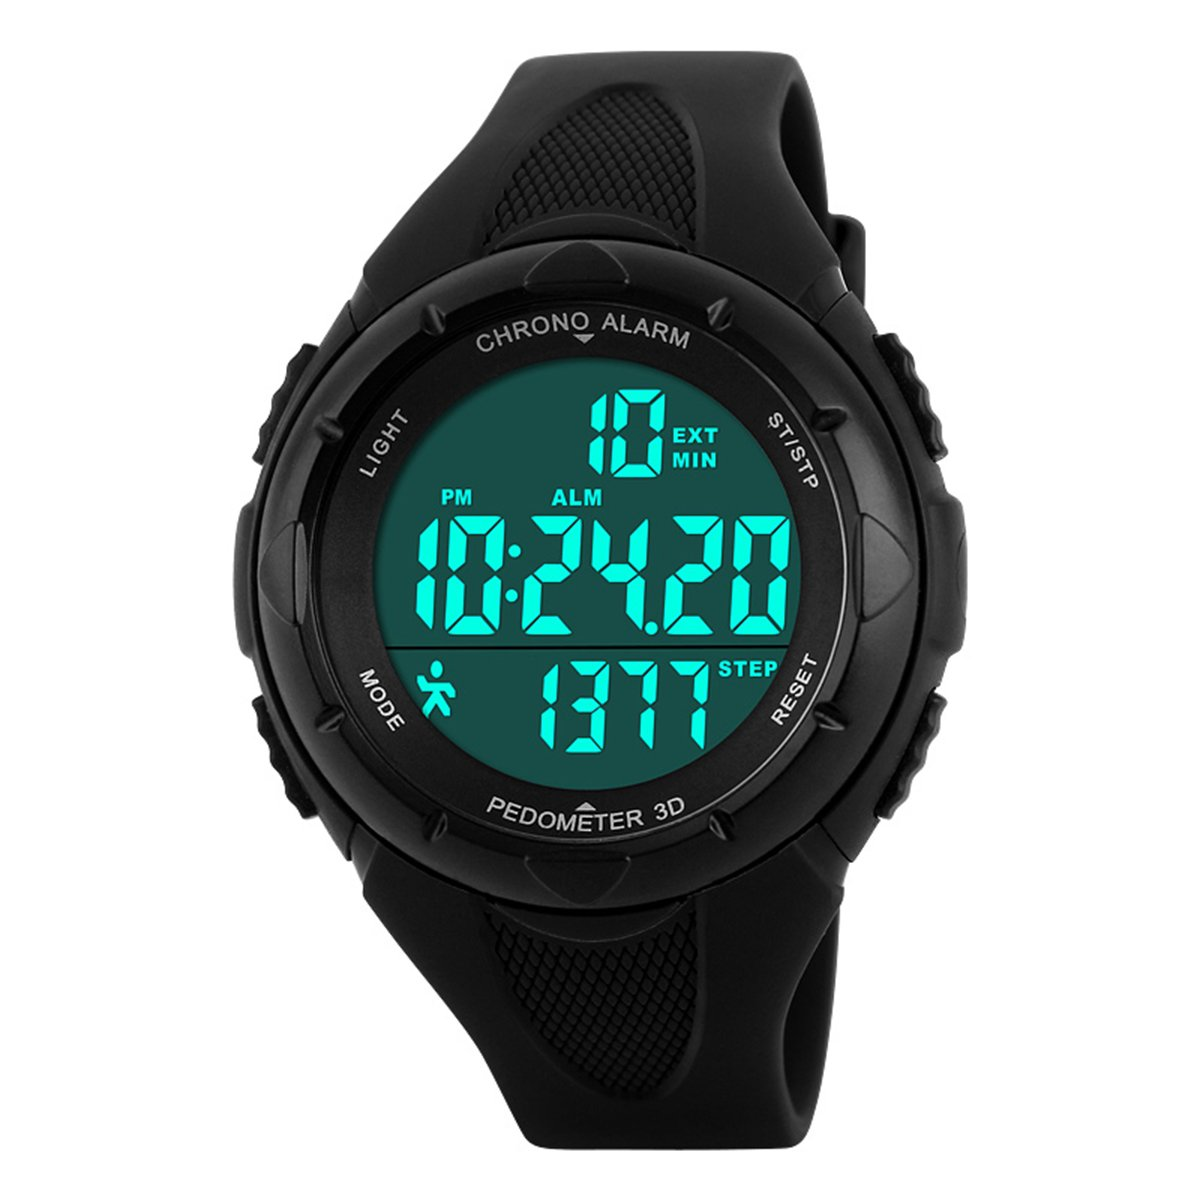 Kids Sport Digital Watch Multifunction Outdoor Waterproof Pedometer Wrist watch for boys girls (Black) by BesWlz